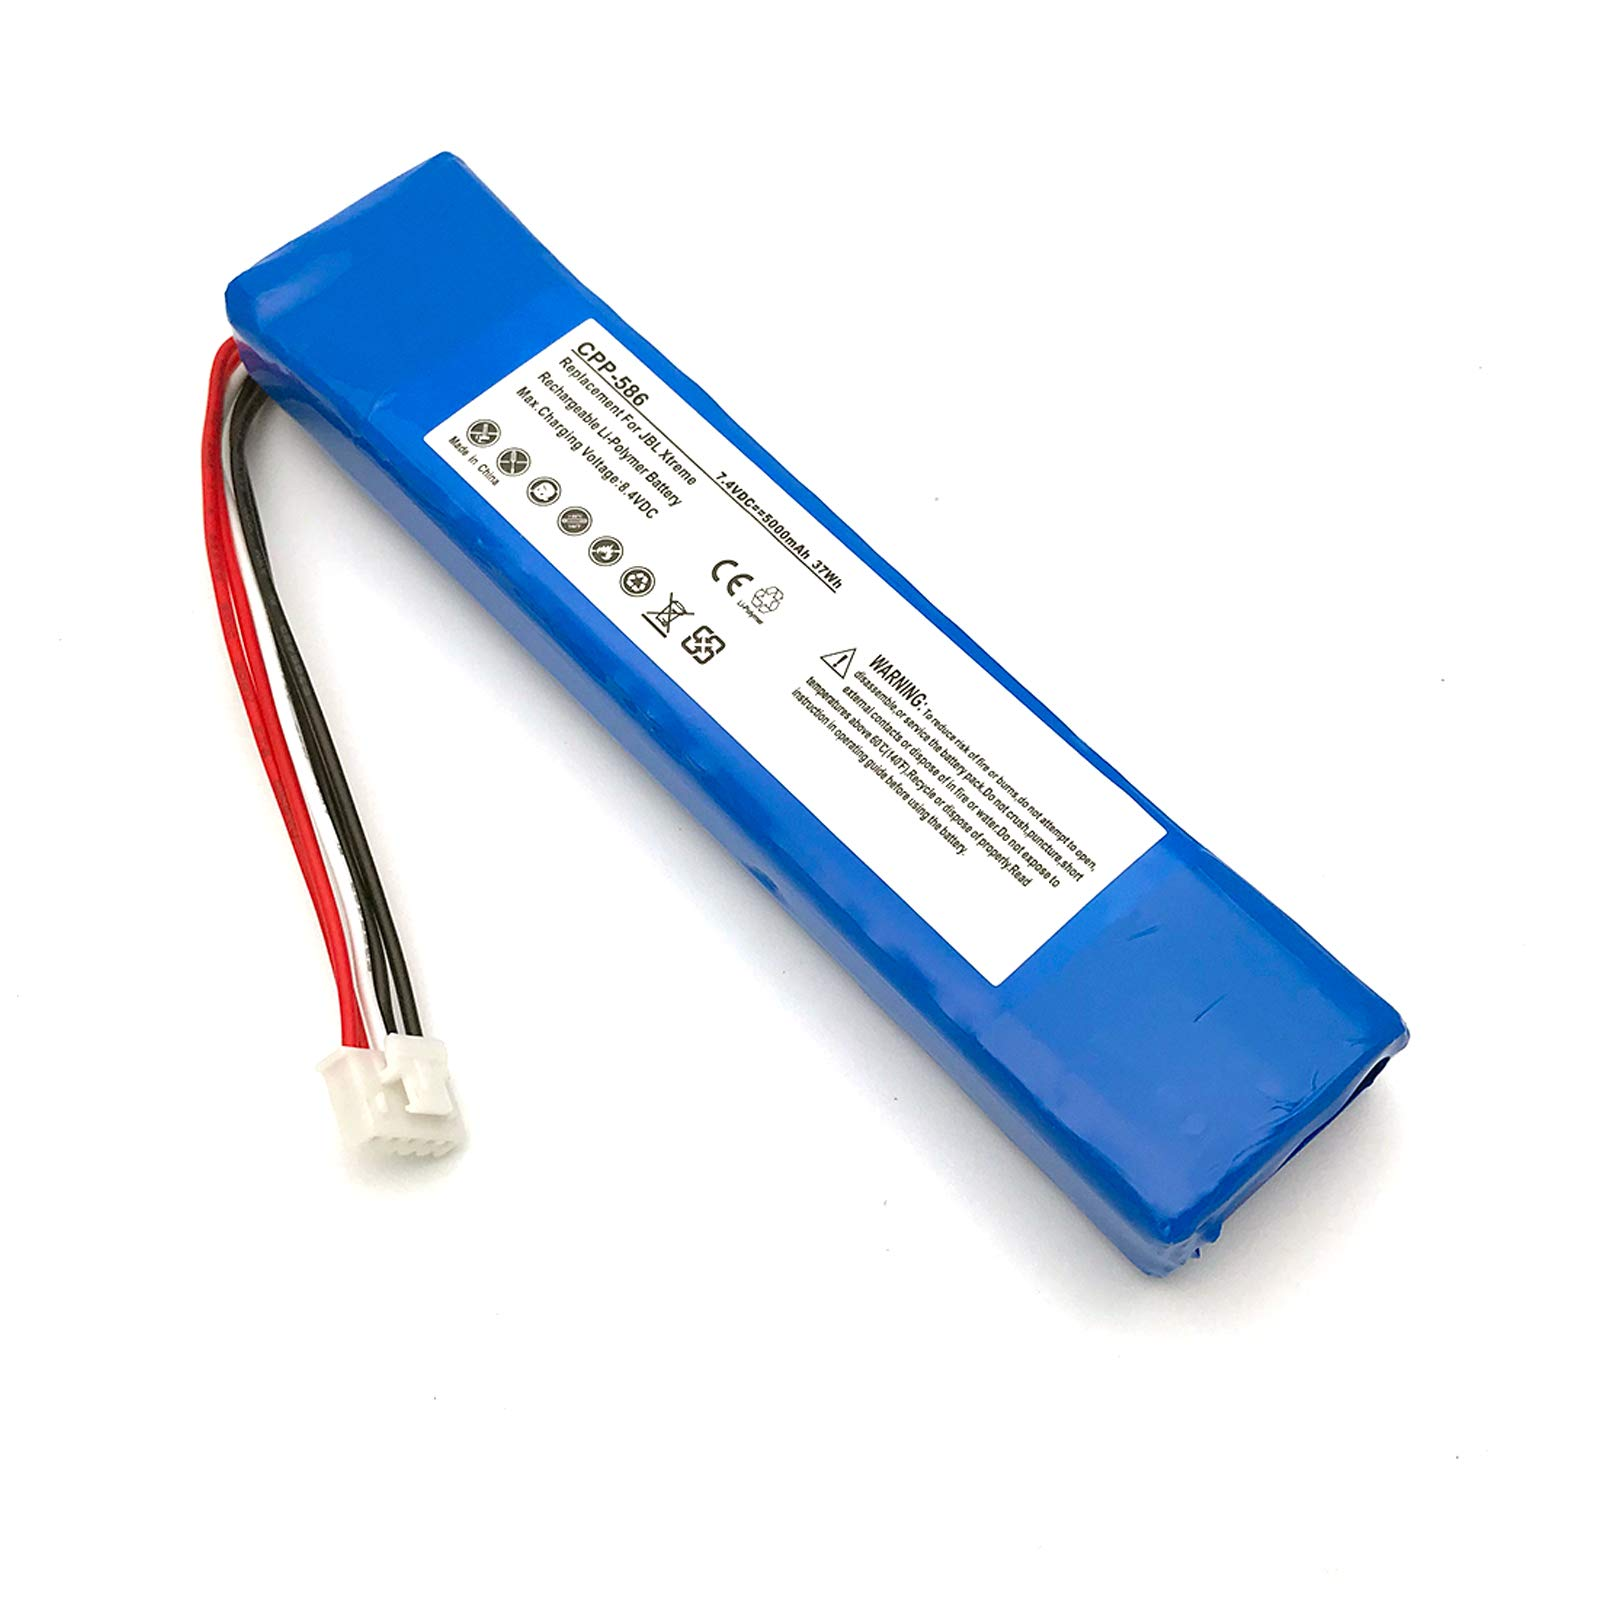 CBK 5000mAh Replacement Battery for JBL Xtreme Wireless Bluetooth Speaker GSP0931134